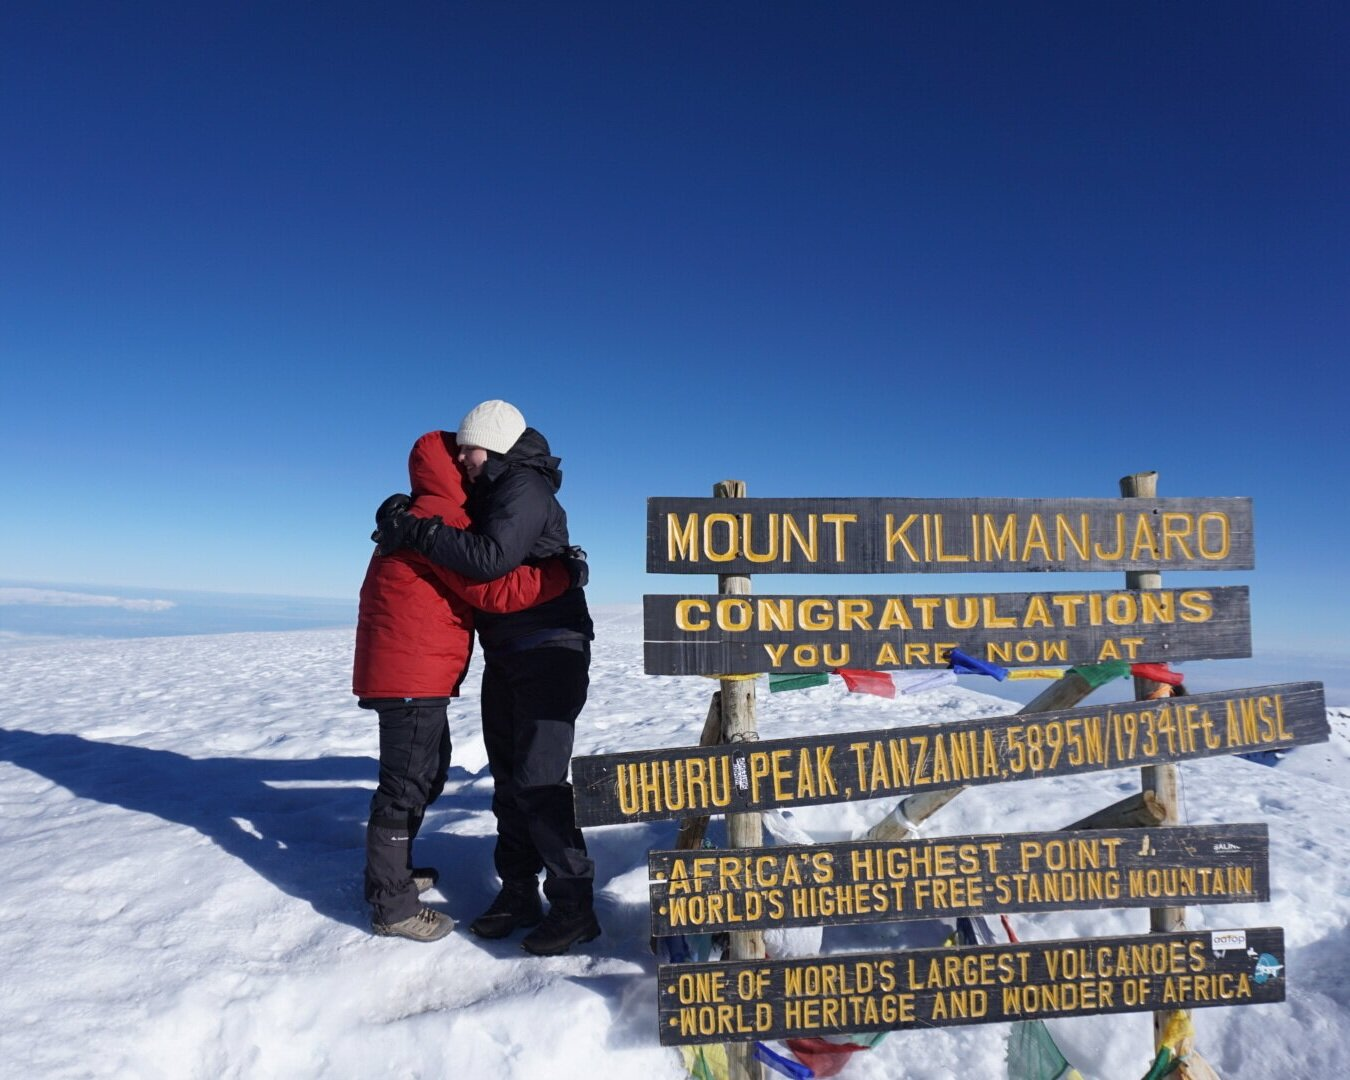 MOUNT KILIMANJARO TREK - Summit the mighty Mount Kilimanjaro on an extraordinary bucket list Tanzanian adventure.9 DAYS | DEMANDING | FIND OUT MORE